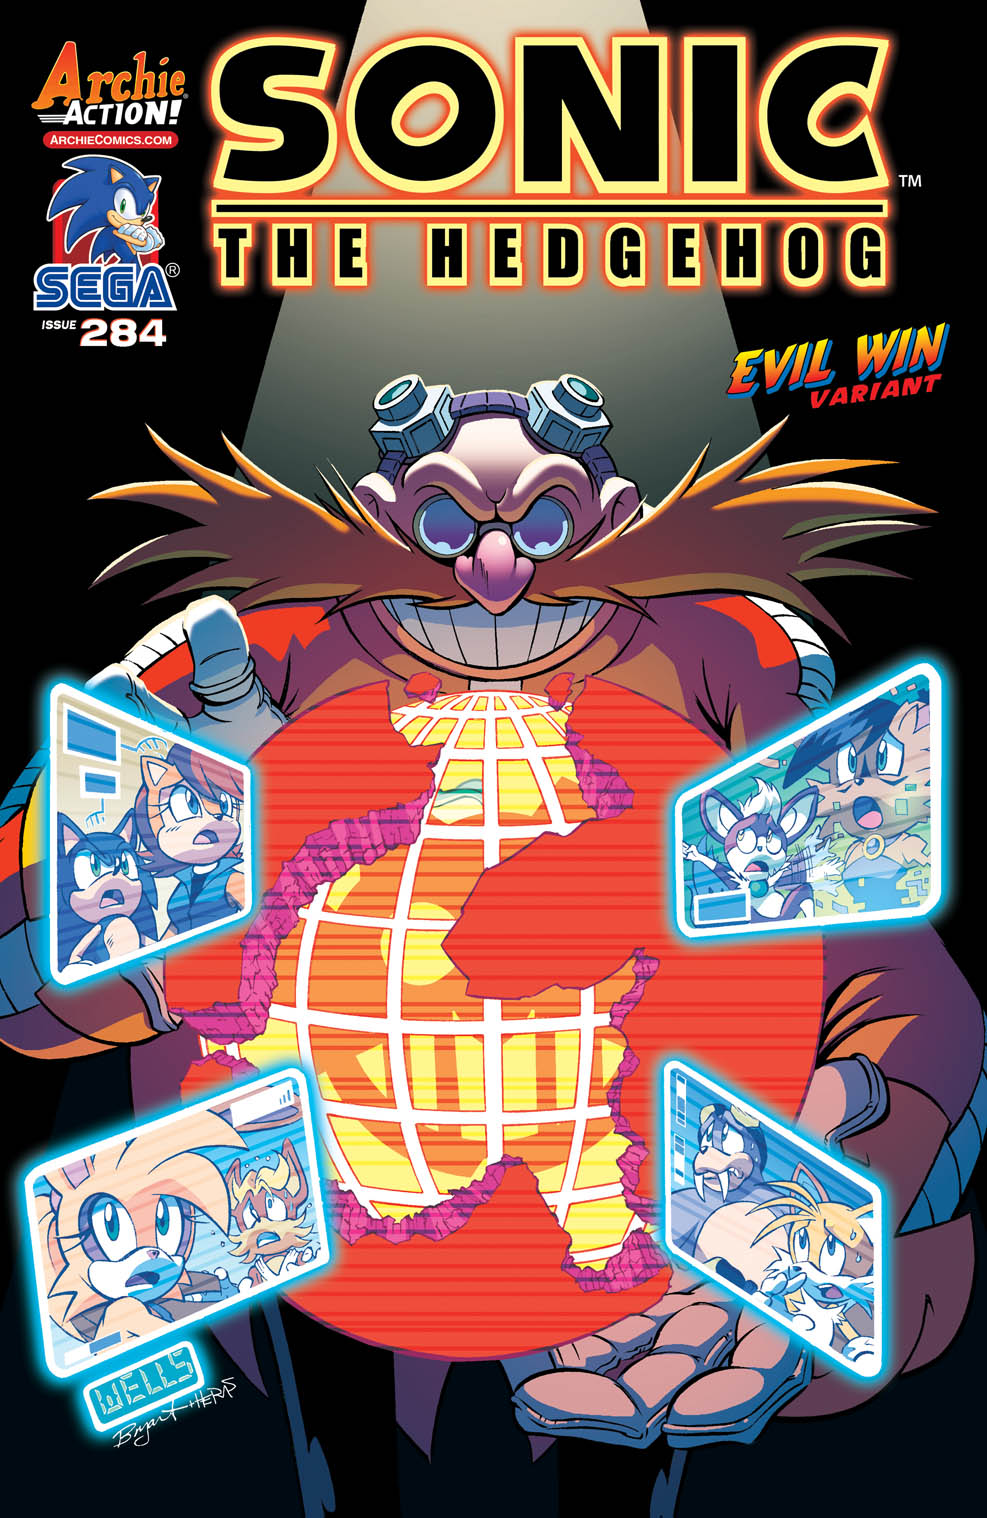 There S Panic In The Sky As Sonic The Hedgehog S Summer Event Kicks Off This June Archie Comics